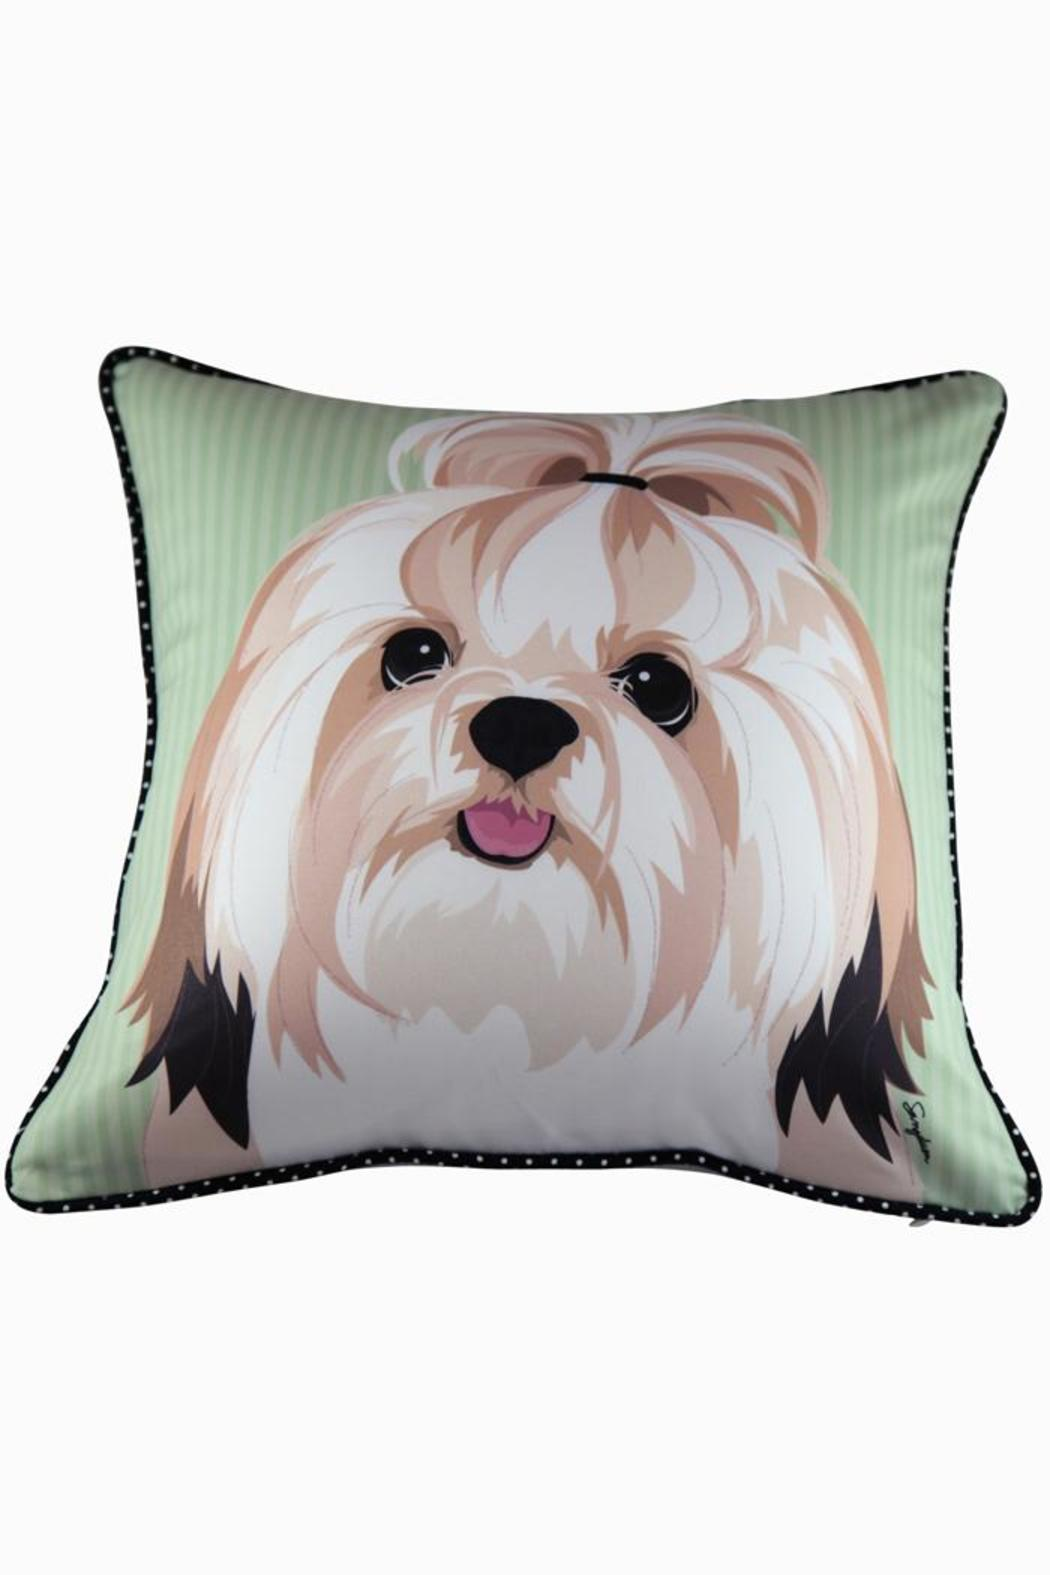 Dogolove Shih Tzu Pillow From California By Dogo Love Shoptiques